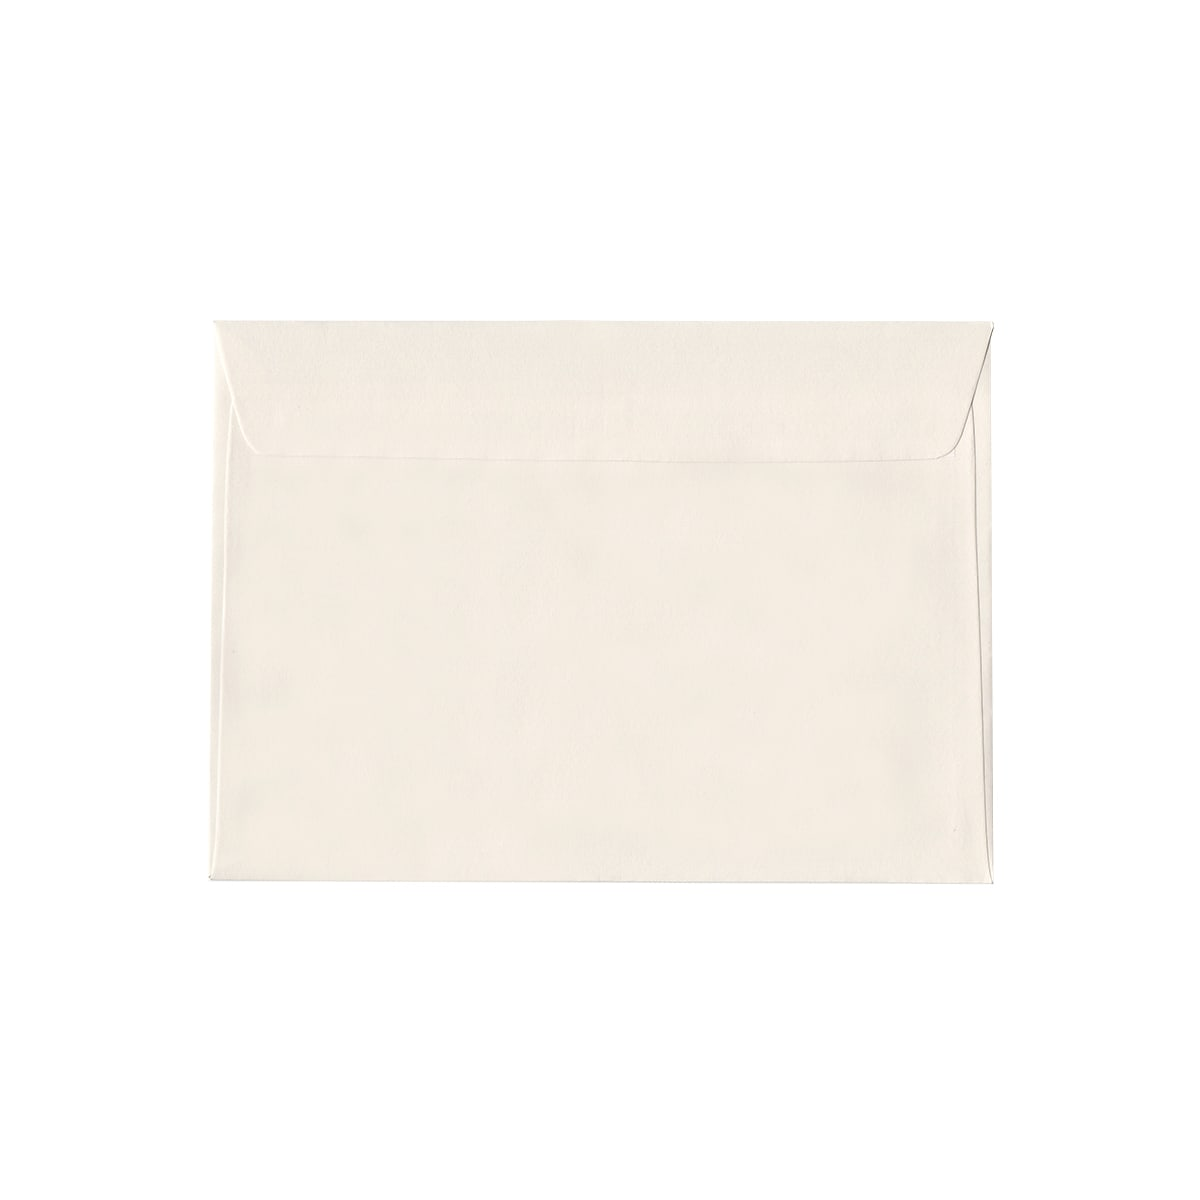 C5 IVORY PEEL AND SEAL ENVELOPES 120GSM